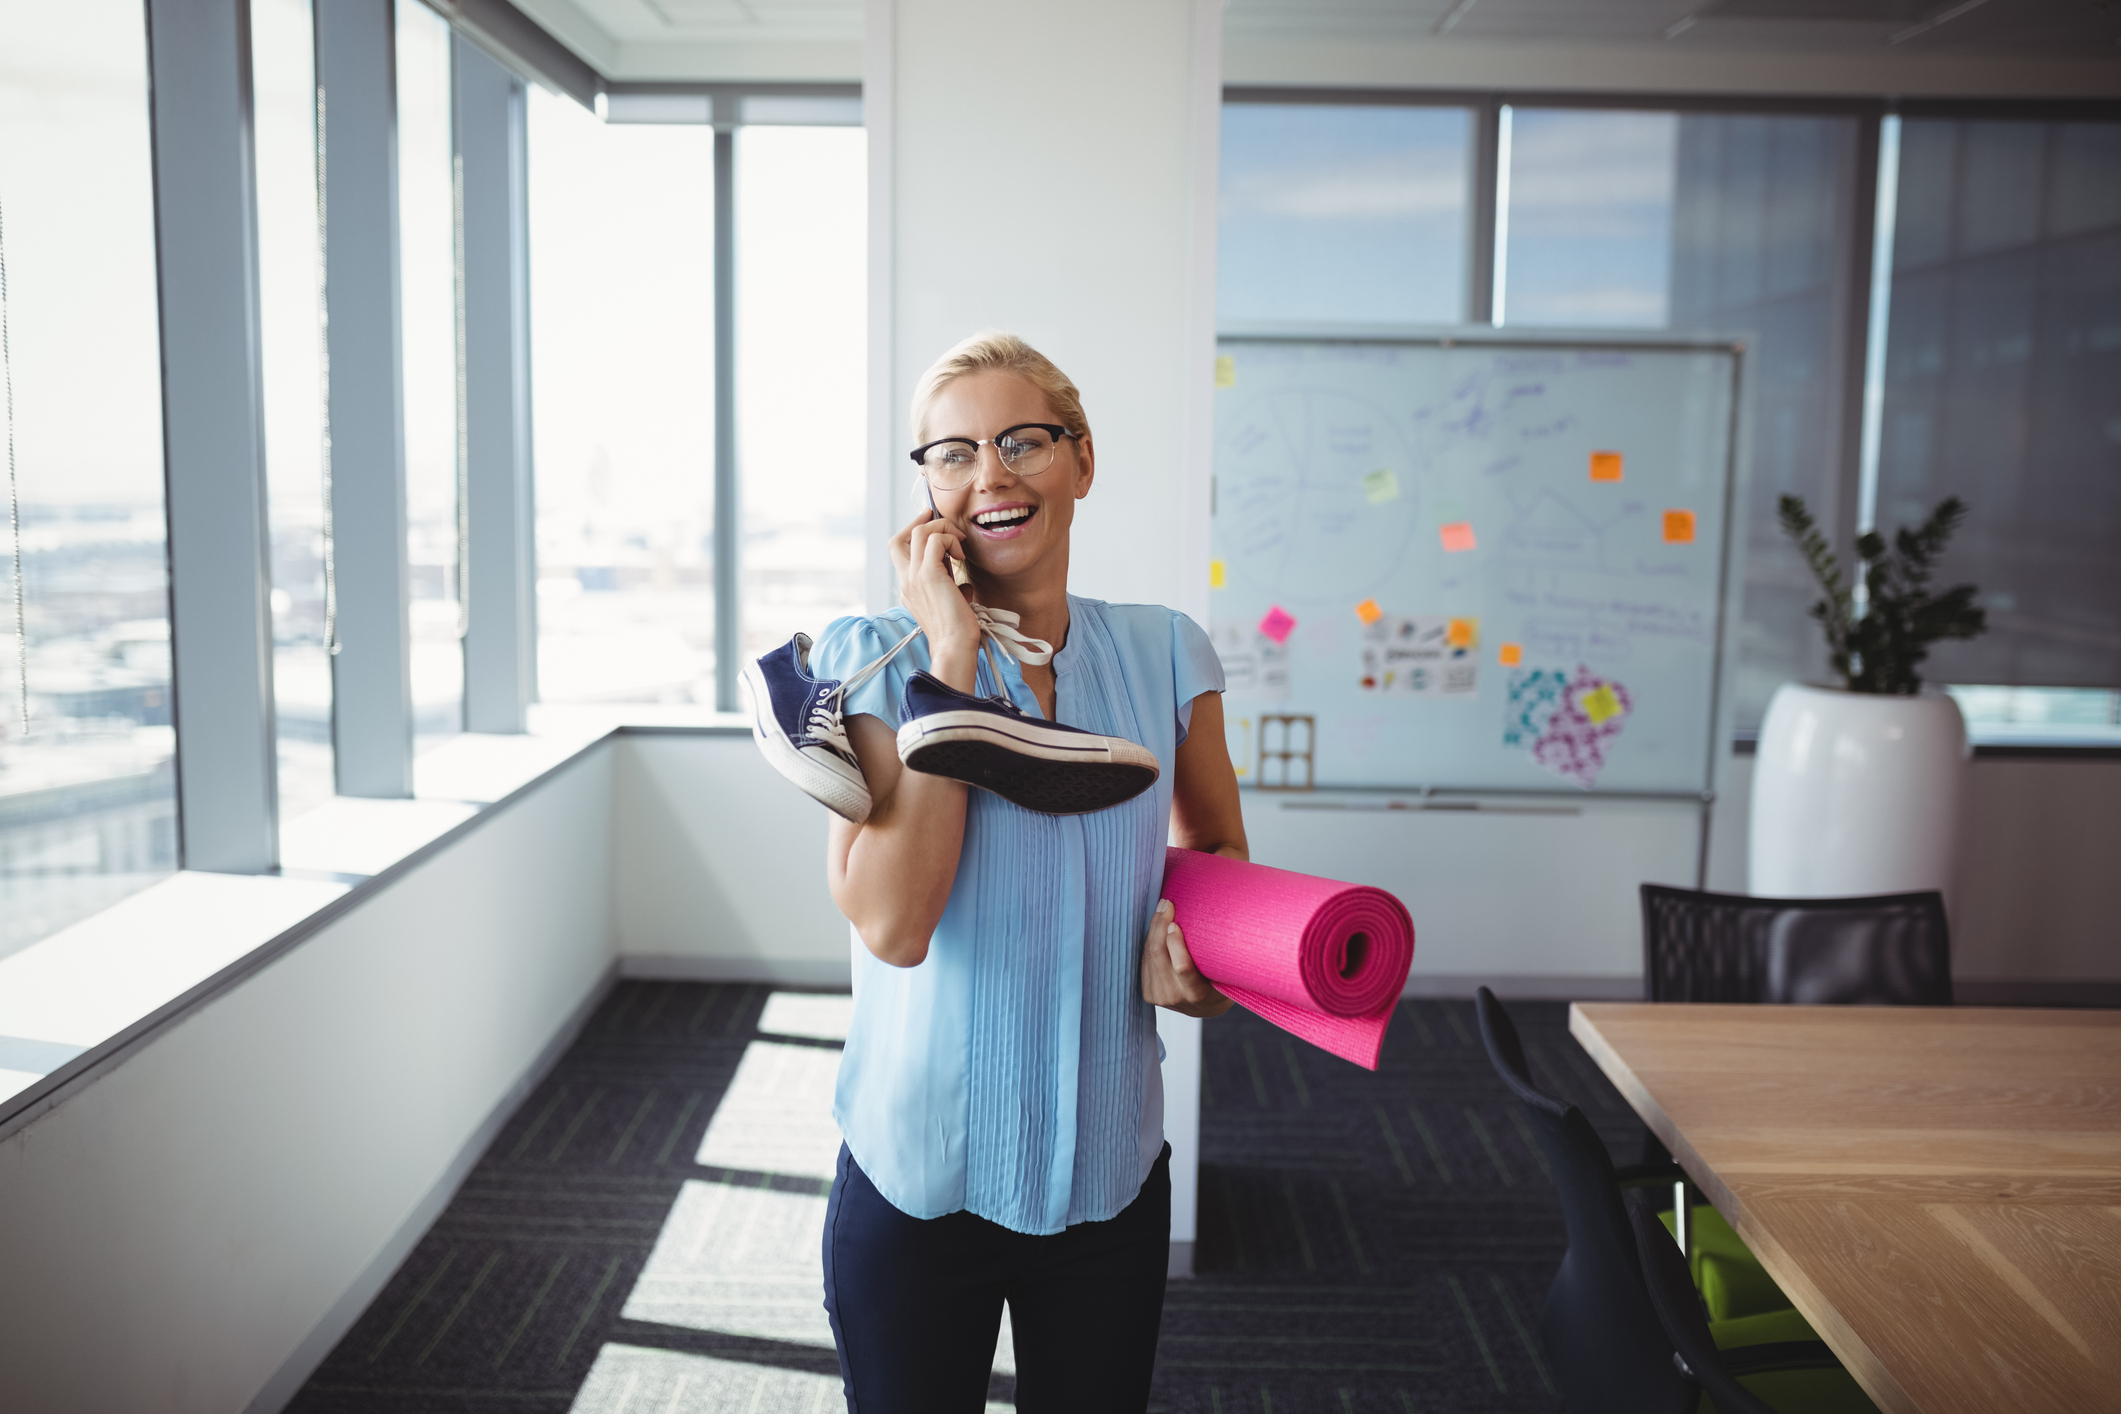 Promoting Wellness in the Workplace